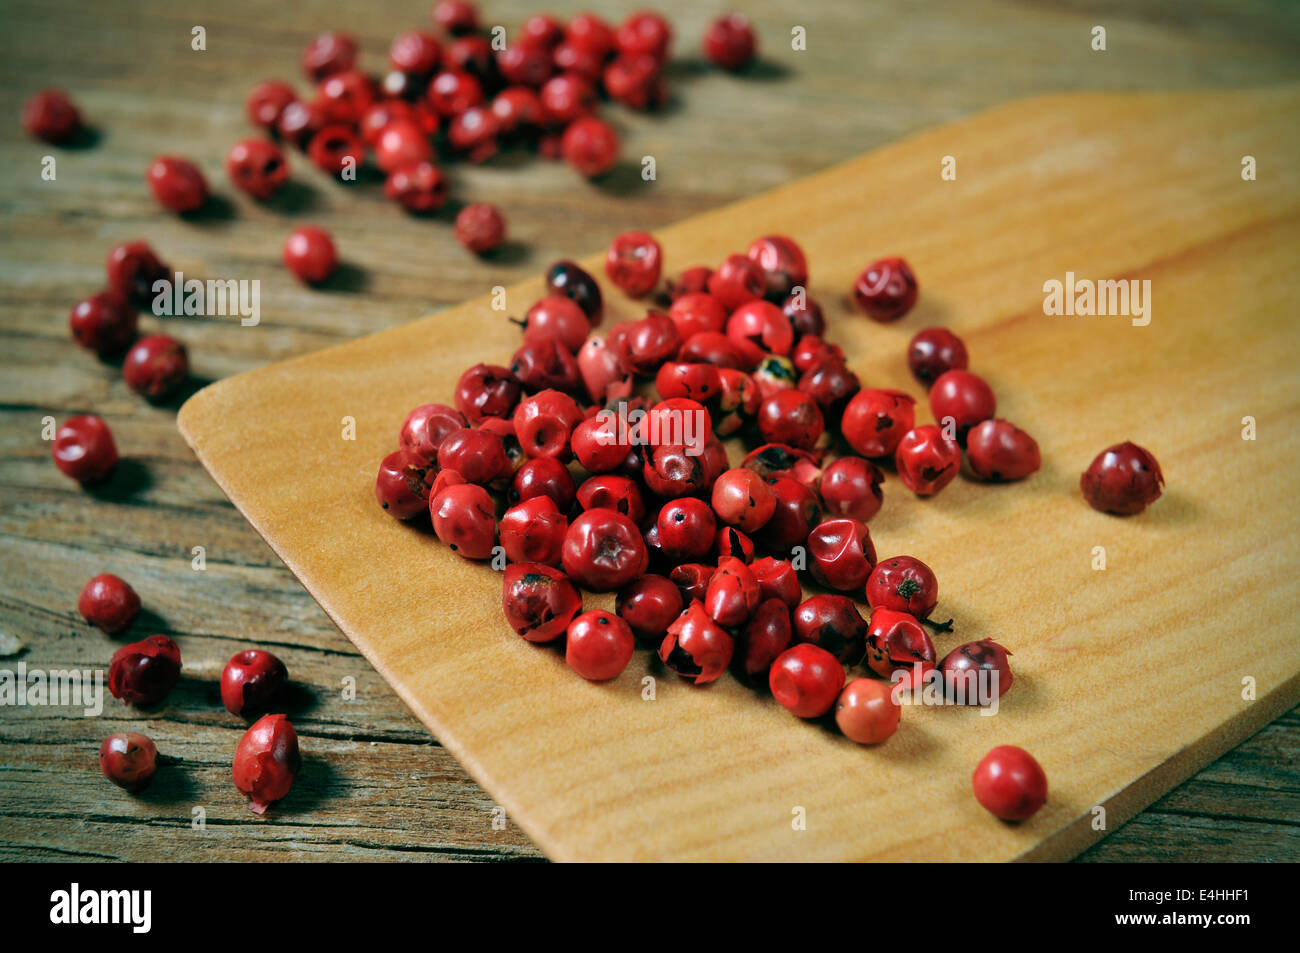 a pile of pink peppercorns on a rustic wooden table - Stock Image